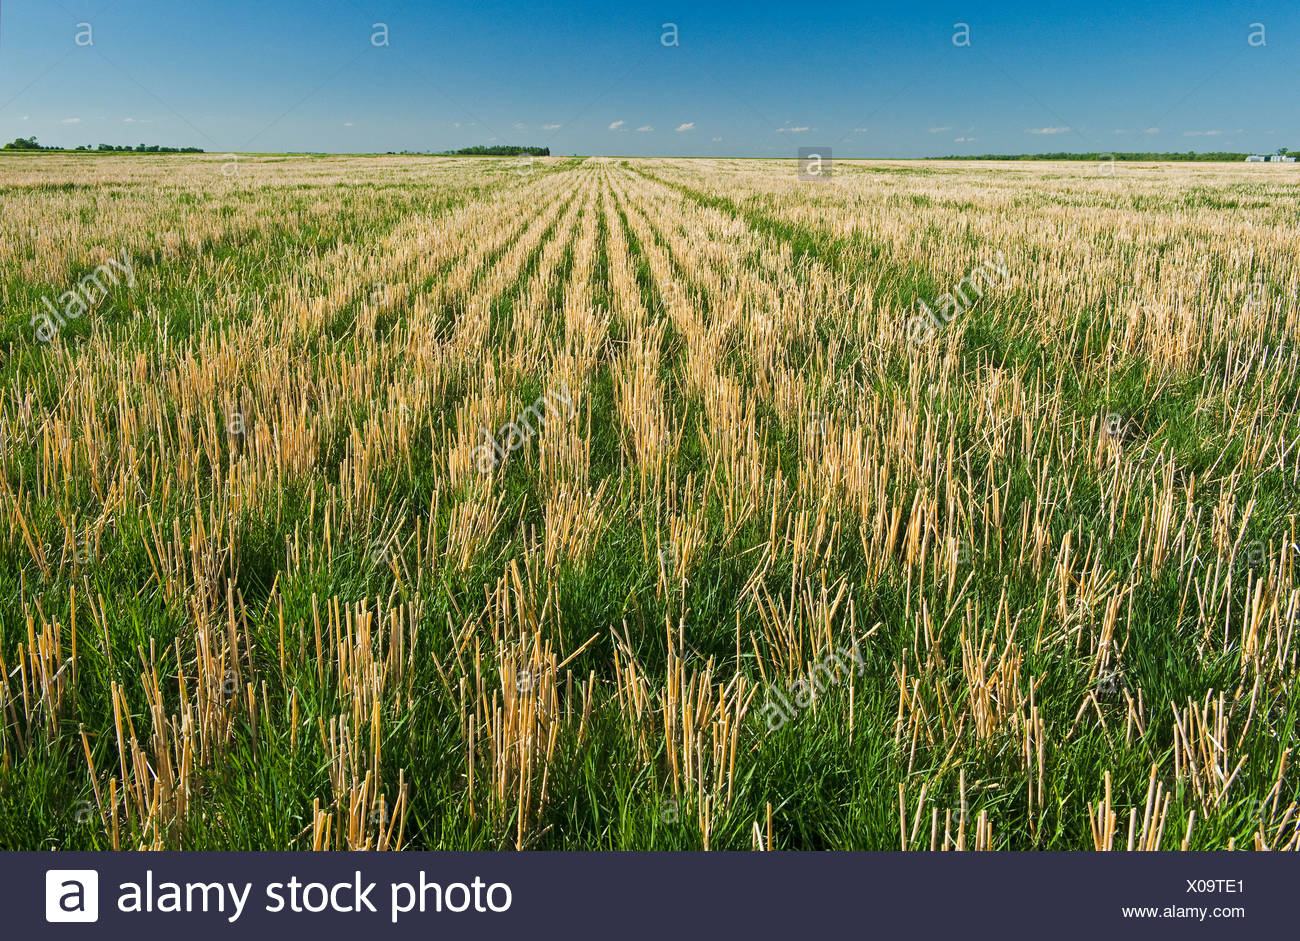 An early growth rye grass growing in zero till soil with wheat stubble, near Carey, Manitoba, Canada - Stock Image